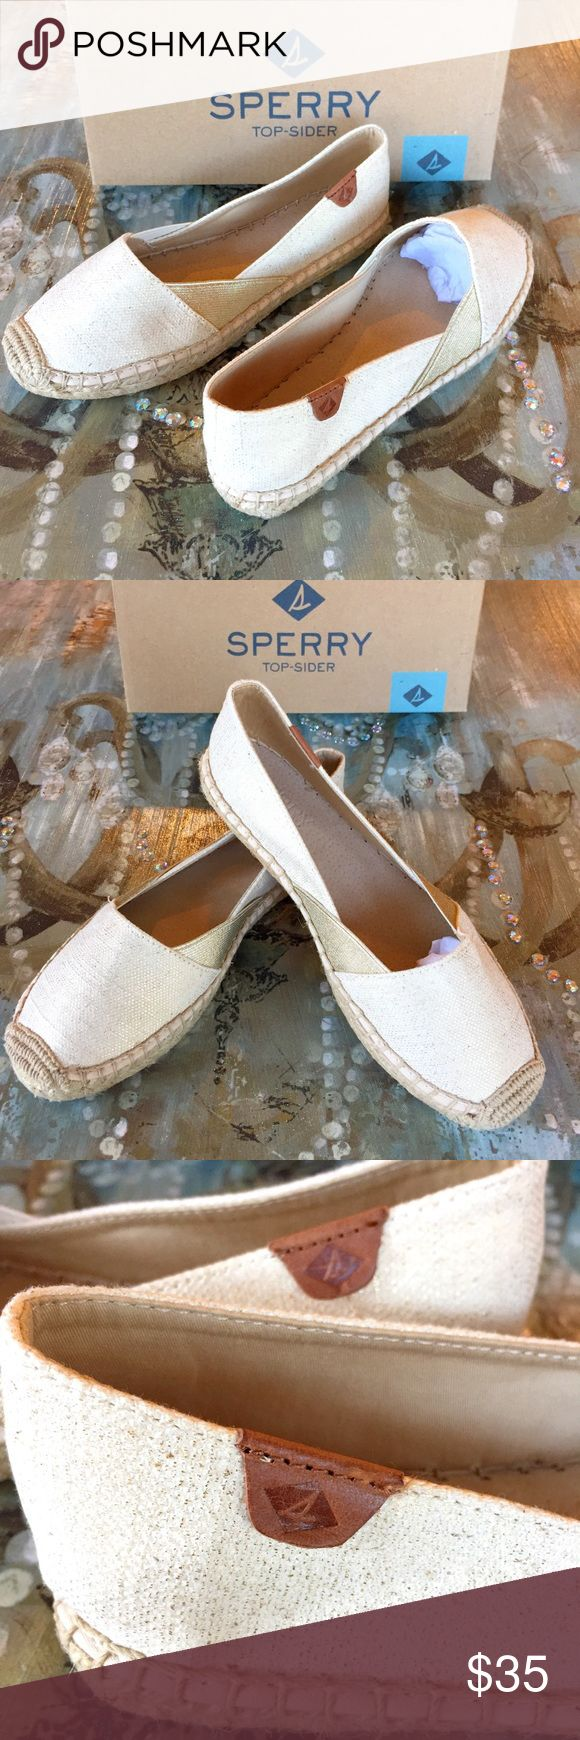 """SPERRY TOP-SIDER These are BRAND NEW WITH TAGS """"Katama Cape Gold"""" woman's Sperrys! They are a size 7 but will also fit a 6.5. These have never been touched and are in PERFECT condition! These are the perfect boat shoes! These shoes will come exactly how you will purchase them from the SPERRY store (box, stuffing, tissue, etc.)! :) Sperry Top-Sider Shoes Flats & Loafers"""